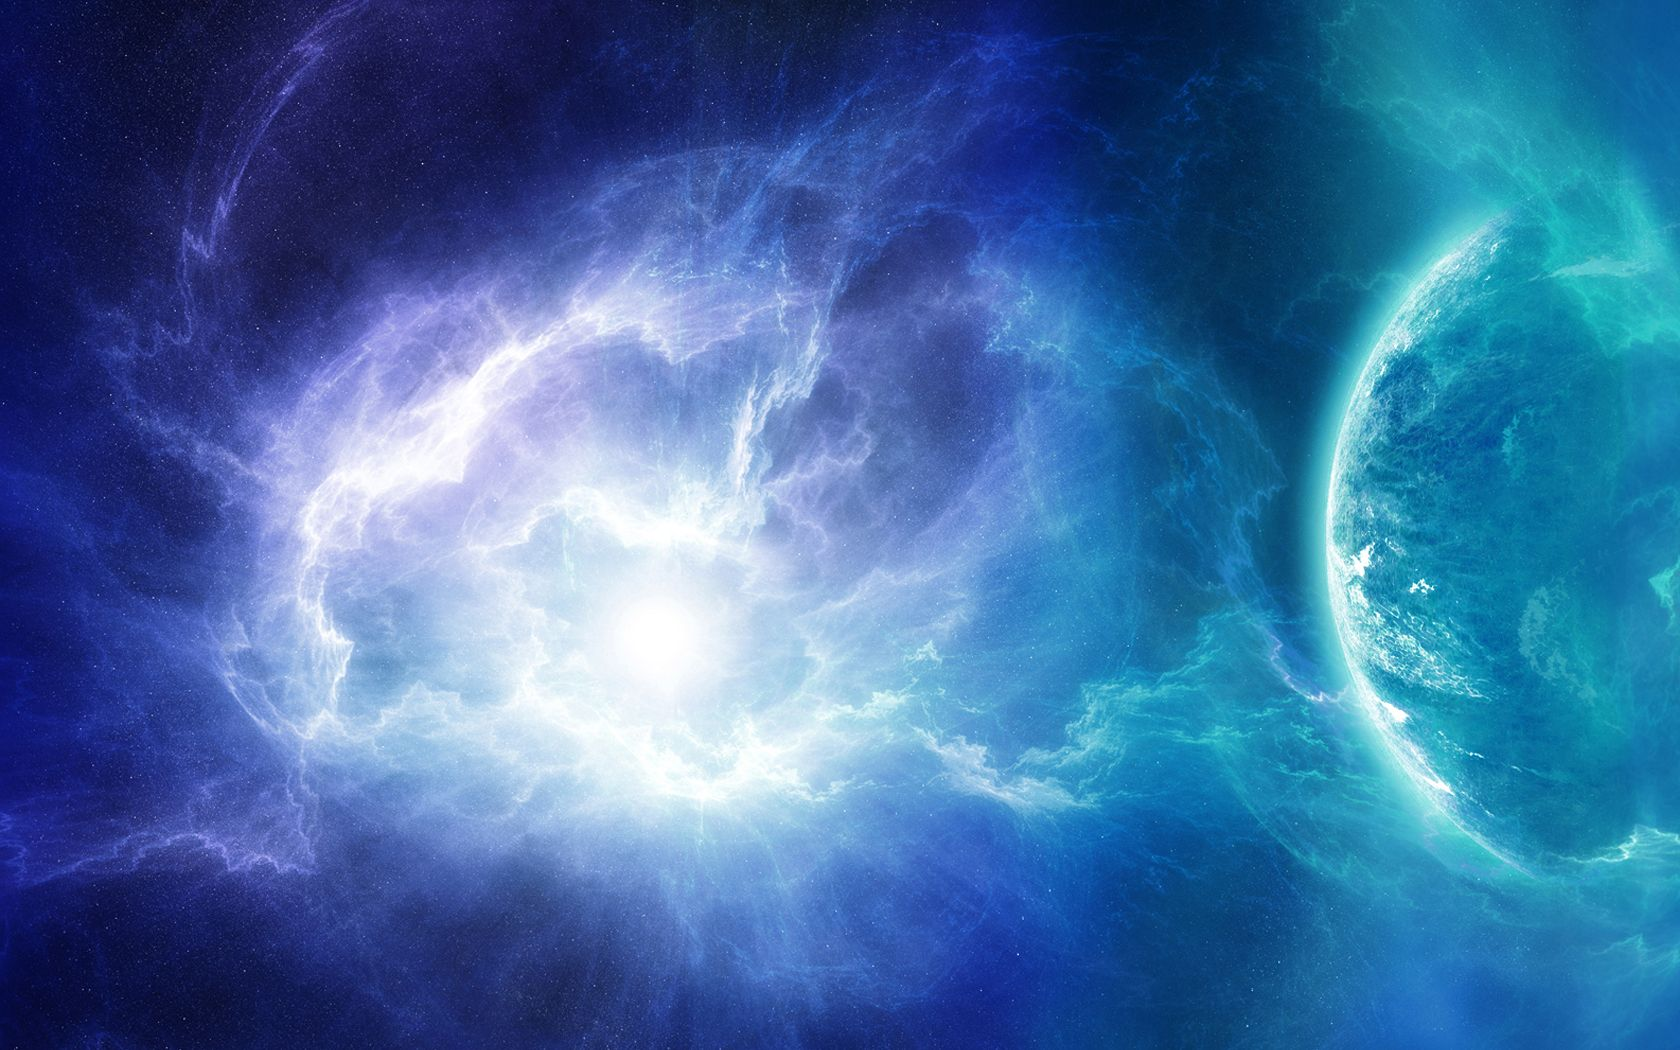 1680x1050 doomsday destruction images solar storm HD wallpaper and background ...